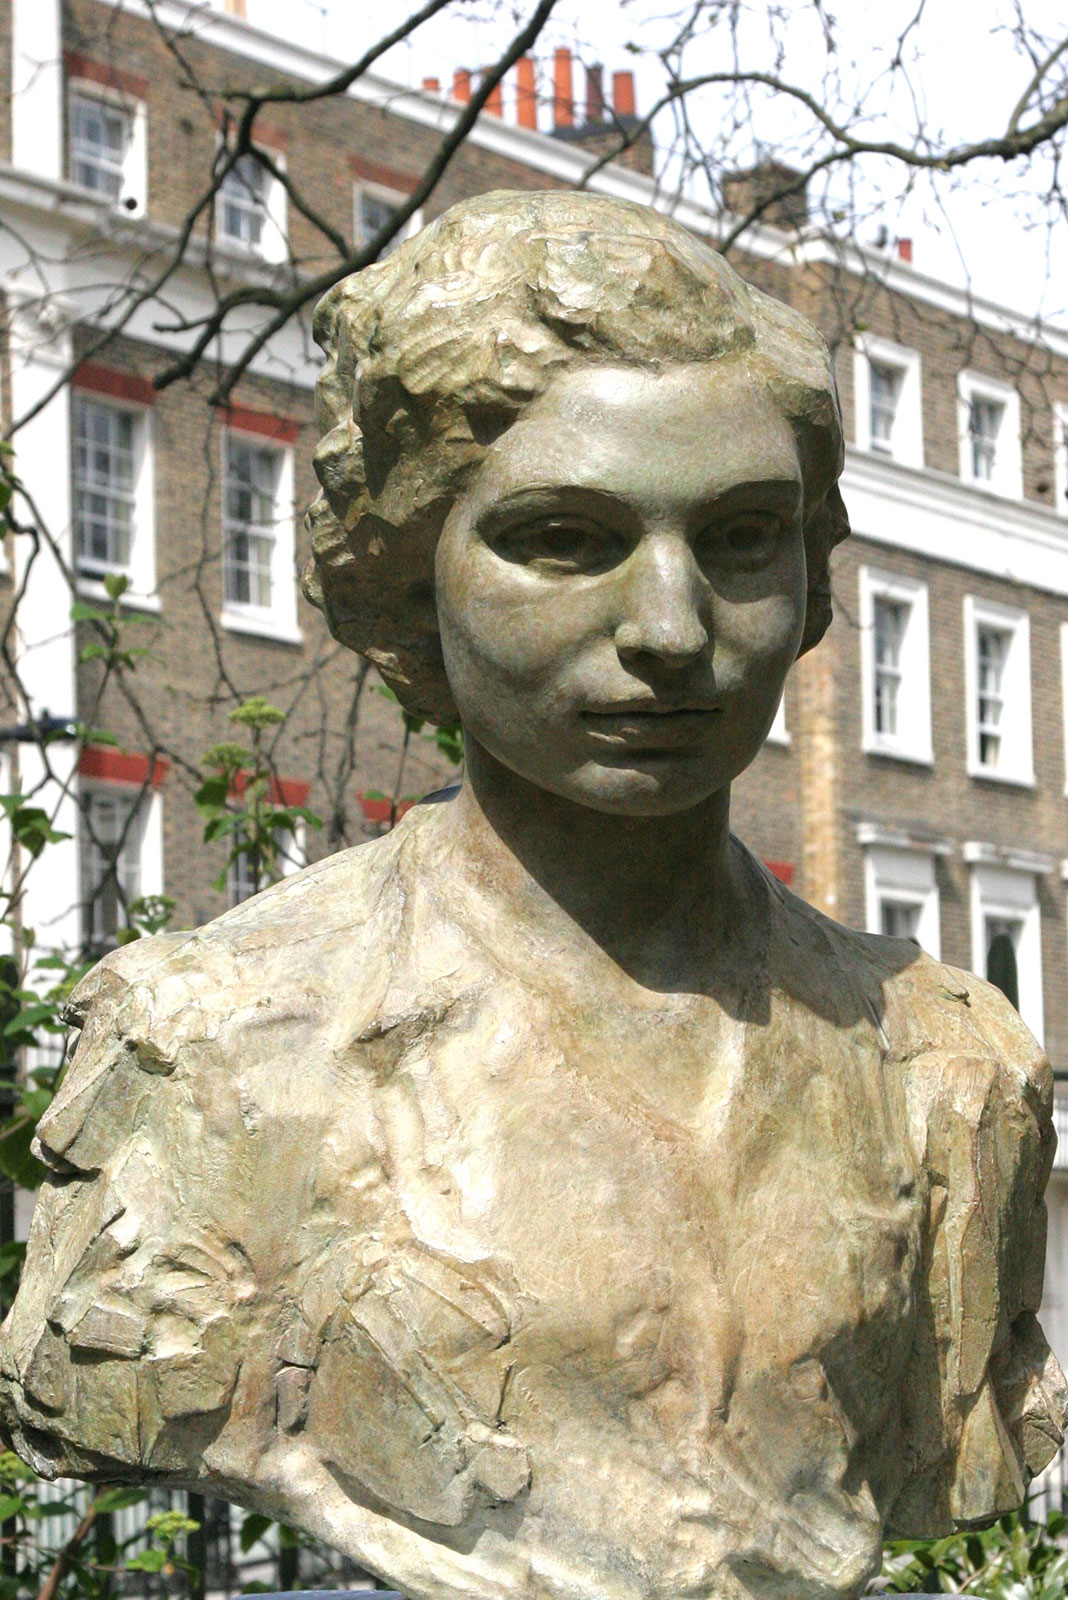 Sculpture of Noor Inayat Khan, GC, Croix de Guerre by Karen Newman